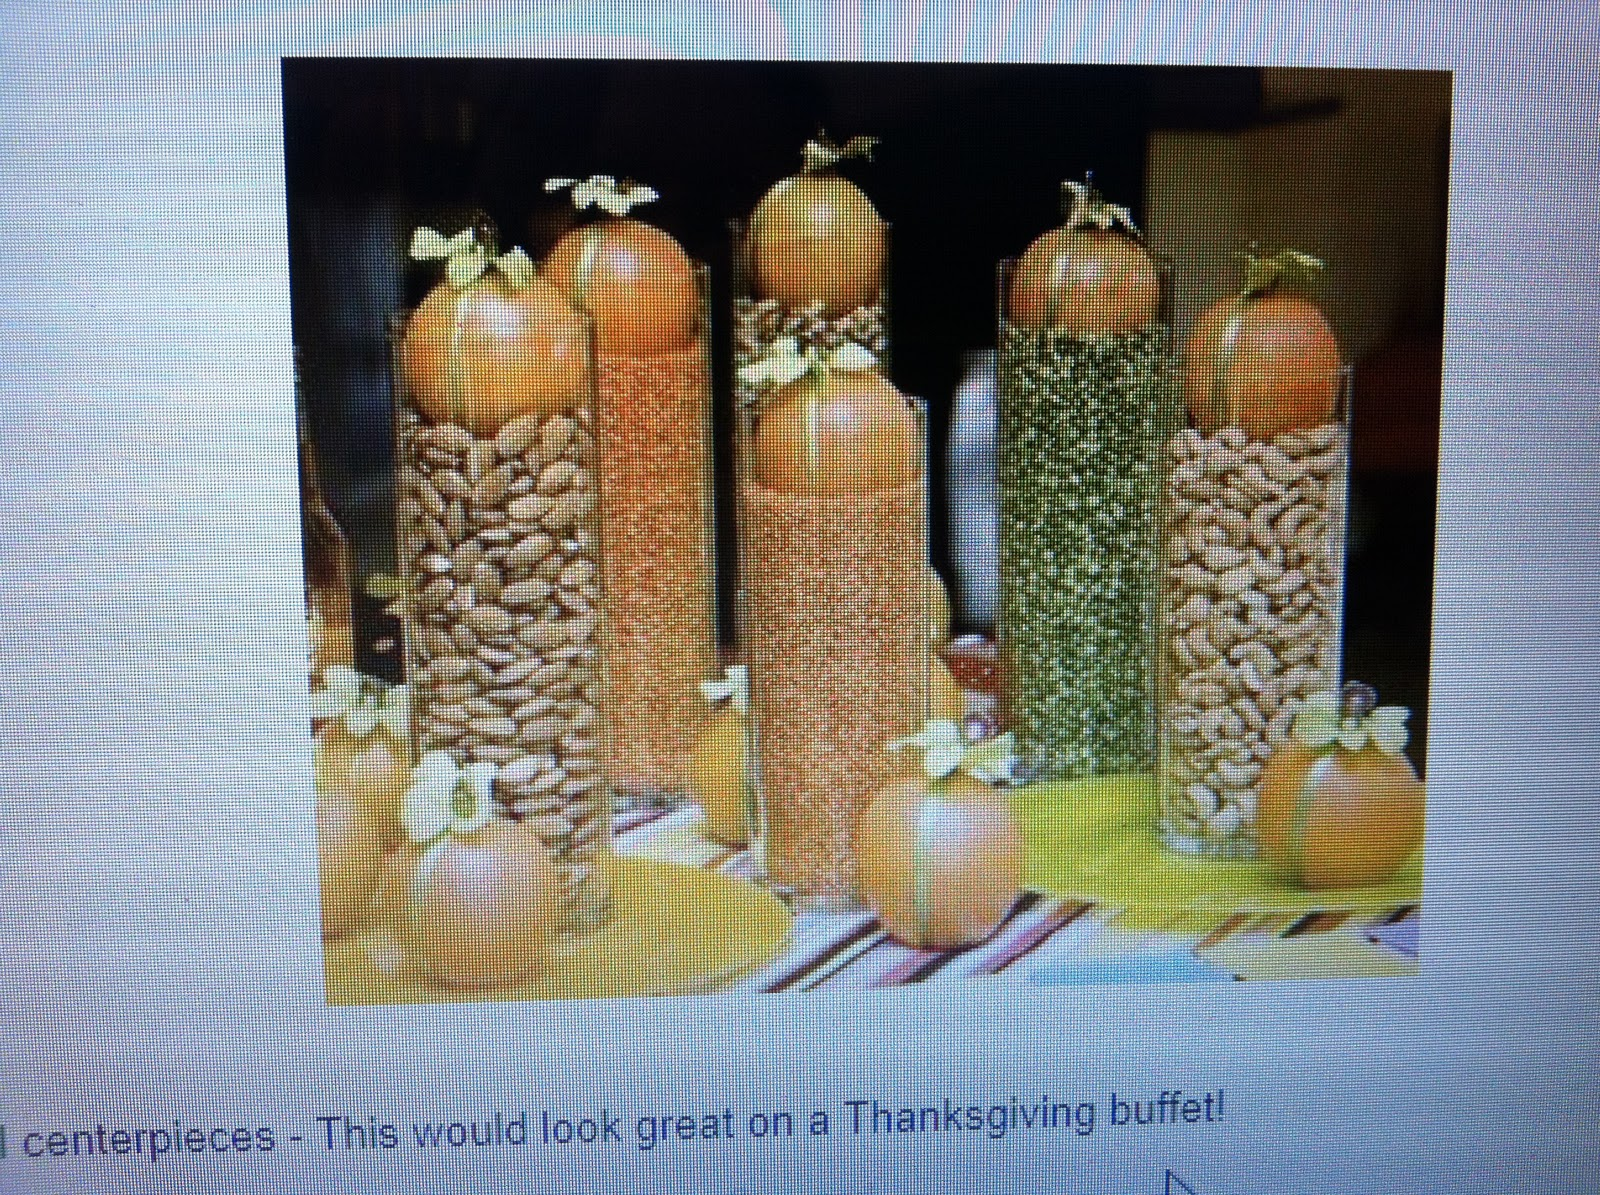 ... 101 in 1001days: Thanksgiving Table Decorations # 99 - Pinterest Idea